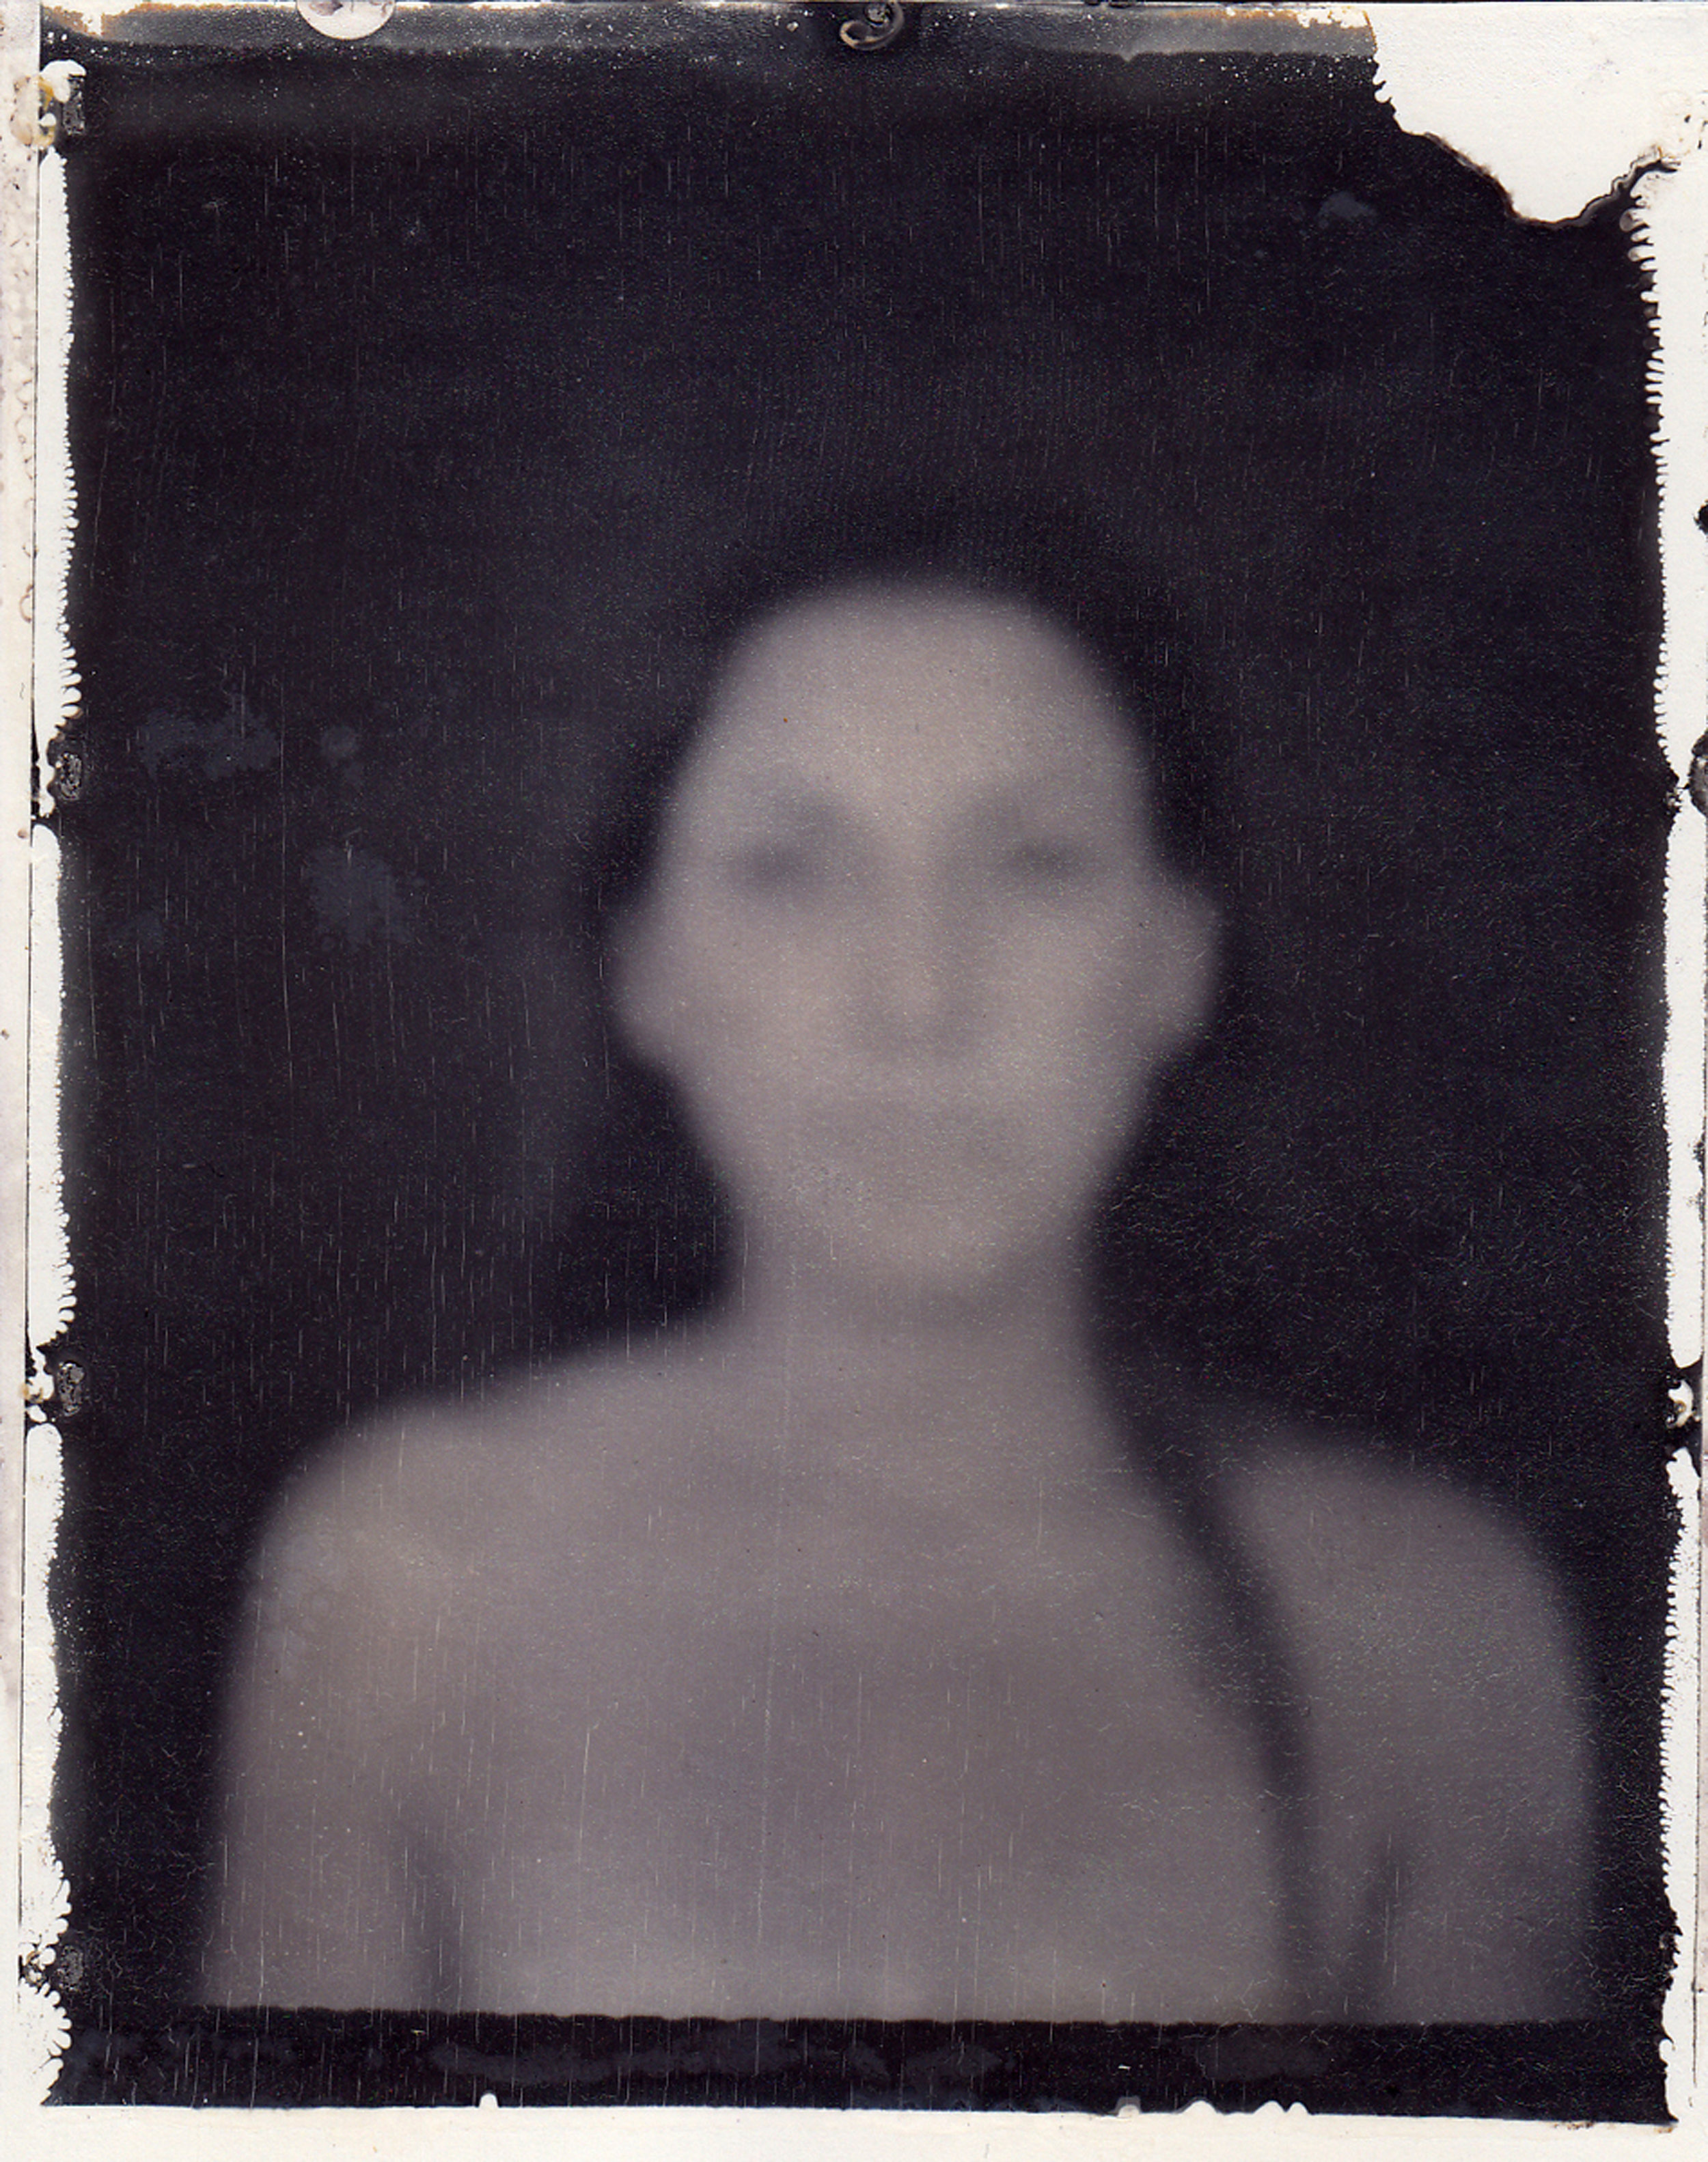 Catherine_Just_Self Portrait #1_from the Ghost seres.jpg